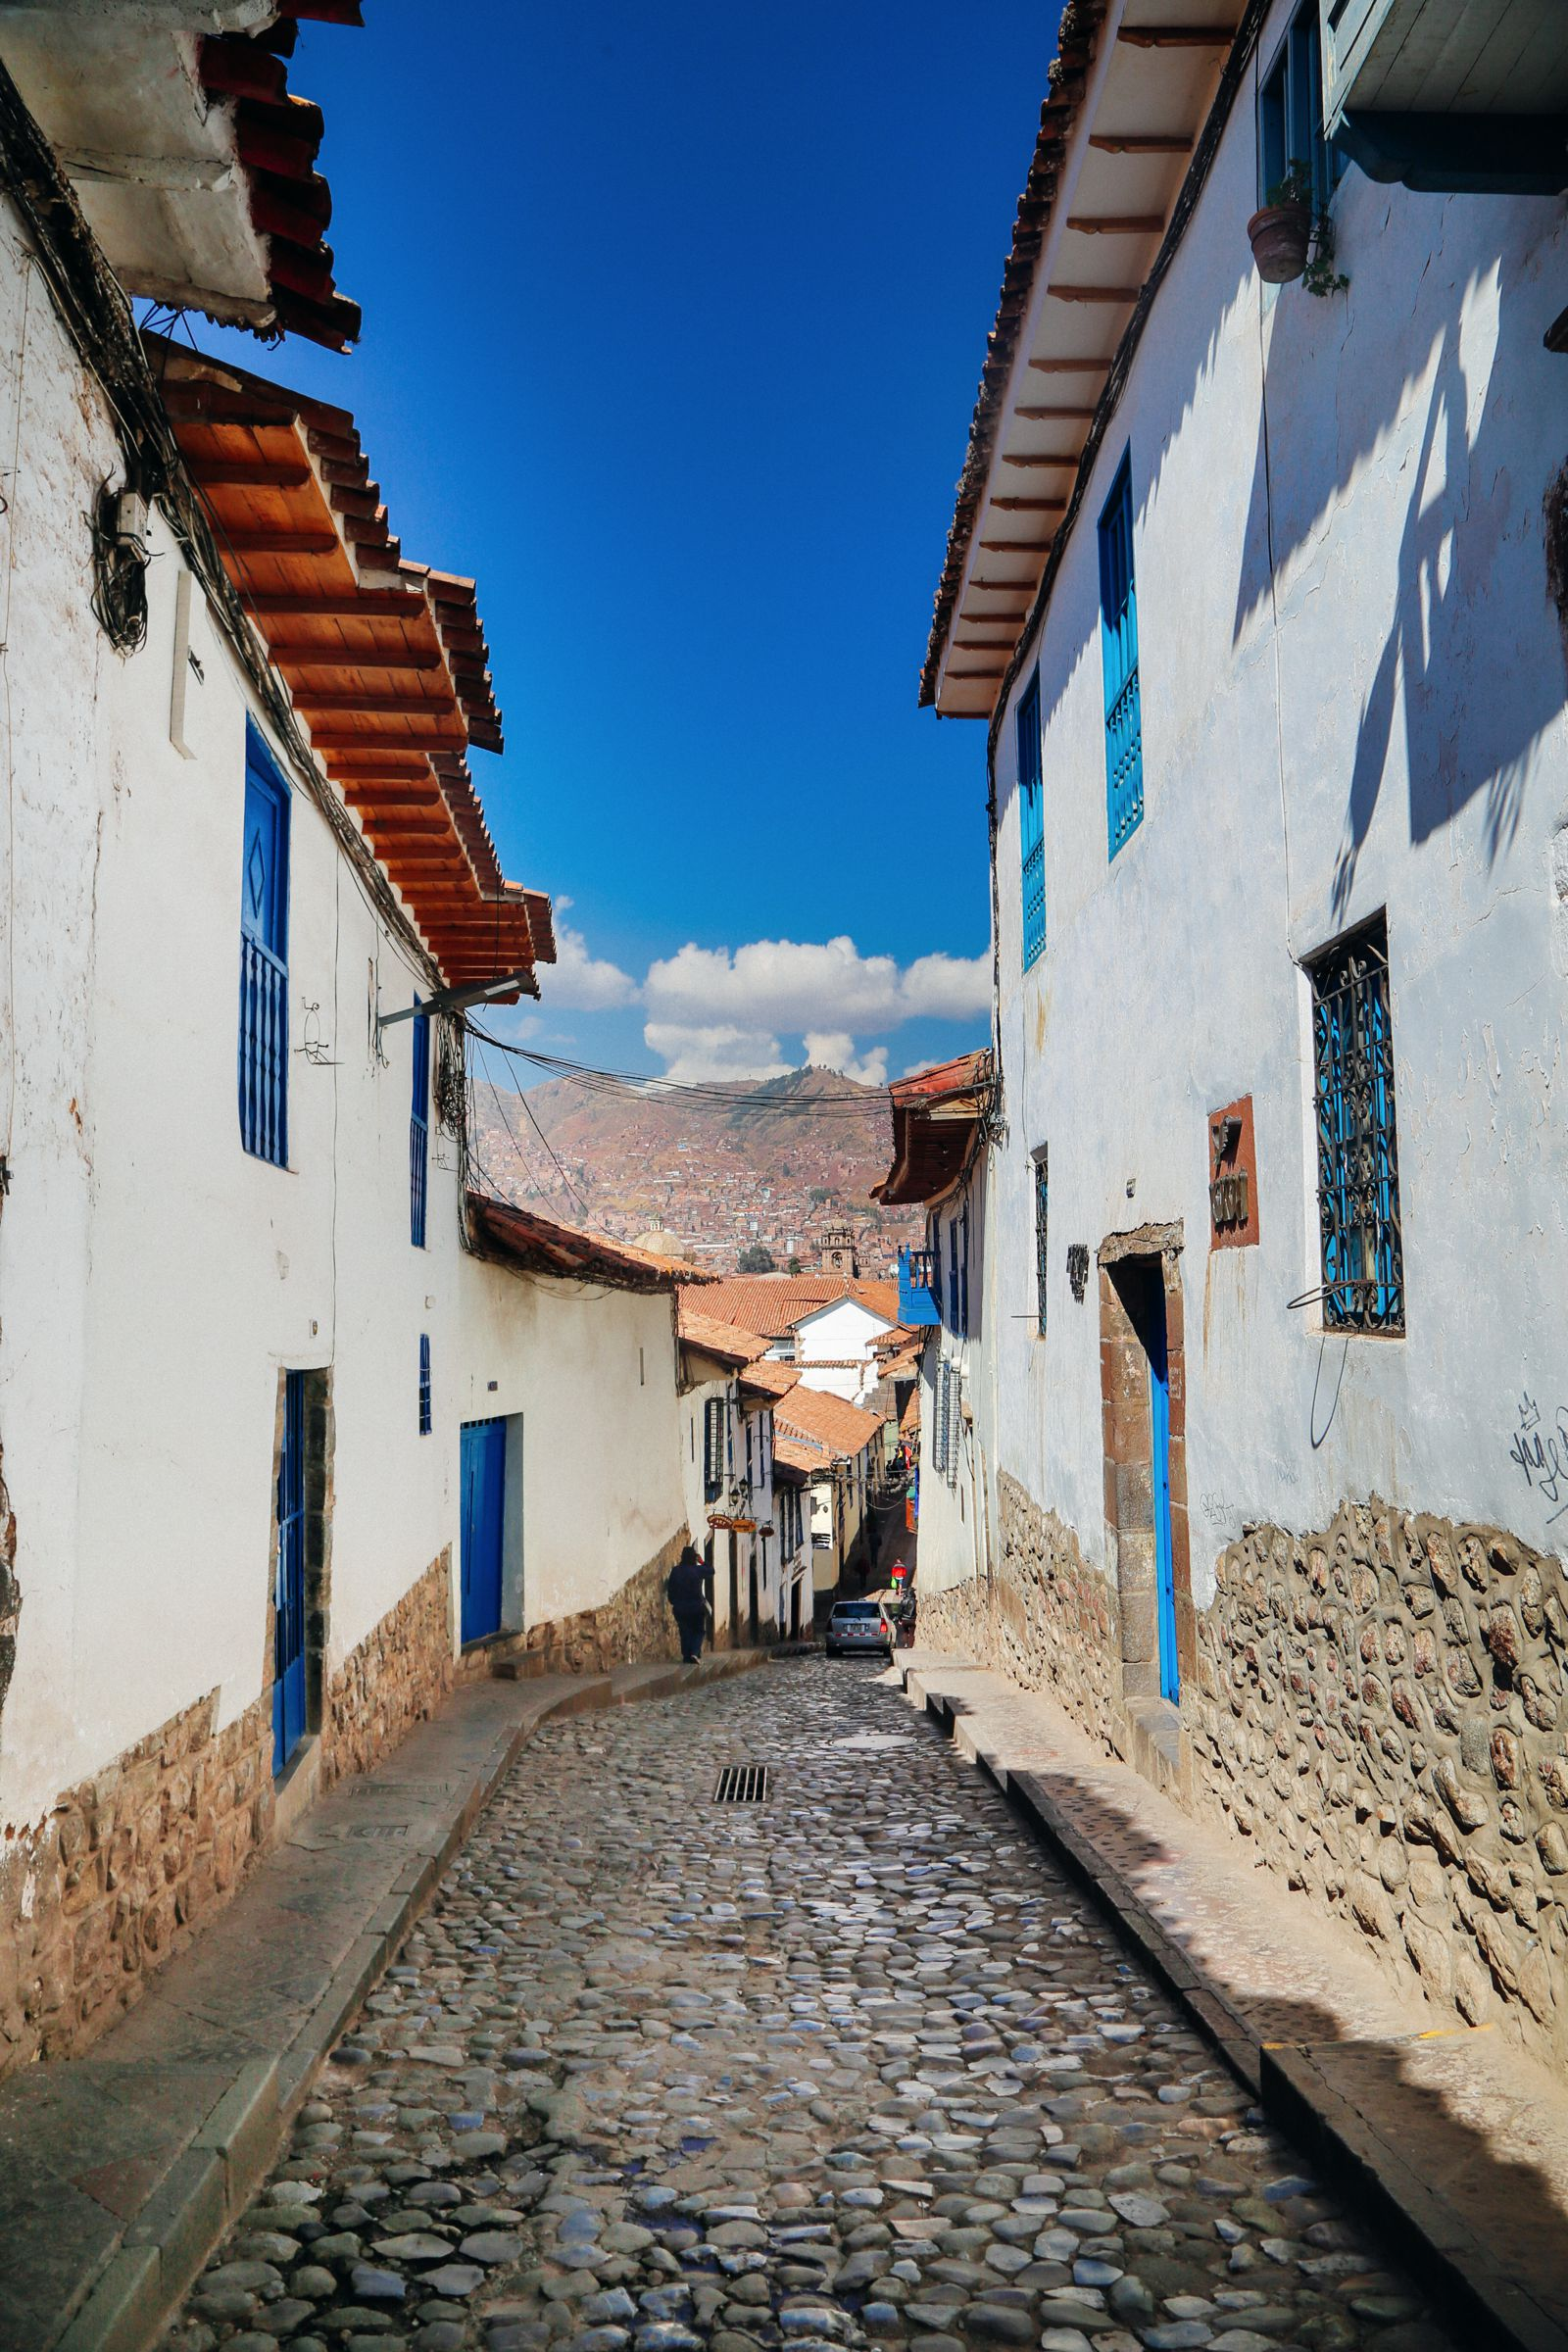 Postcards from Peru - Cusco and Machu Picchu (4)